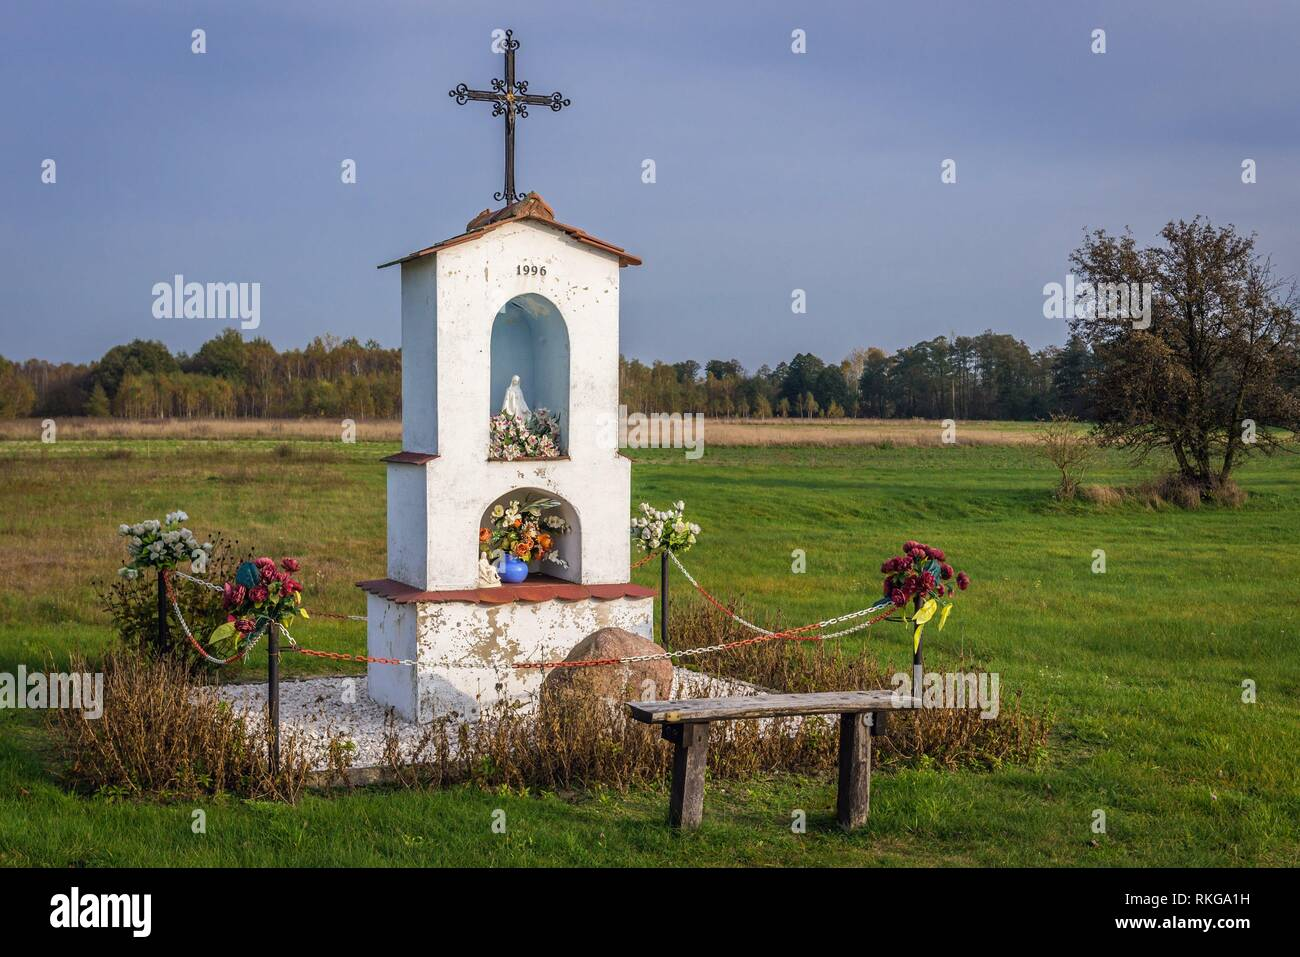 White wayside shrine near Brochow village, Sochaczew County in Masovian Voivodeship of Poland. - Stock Image